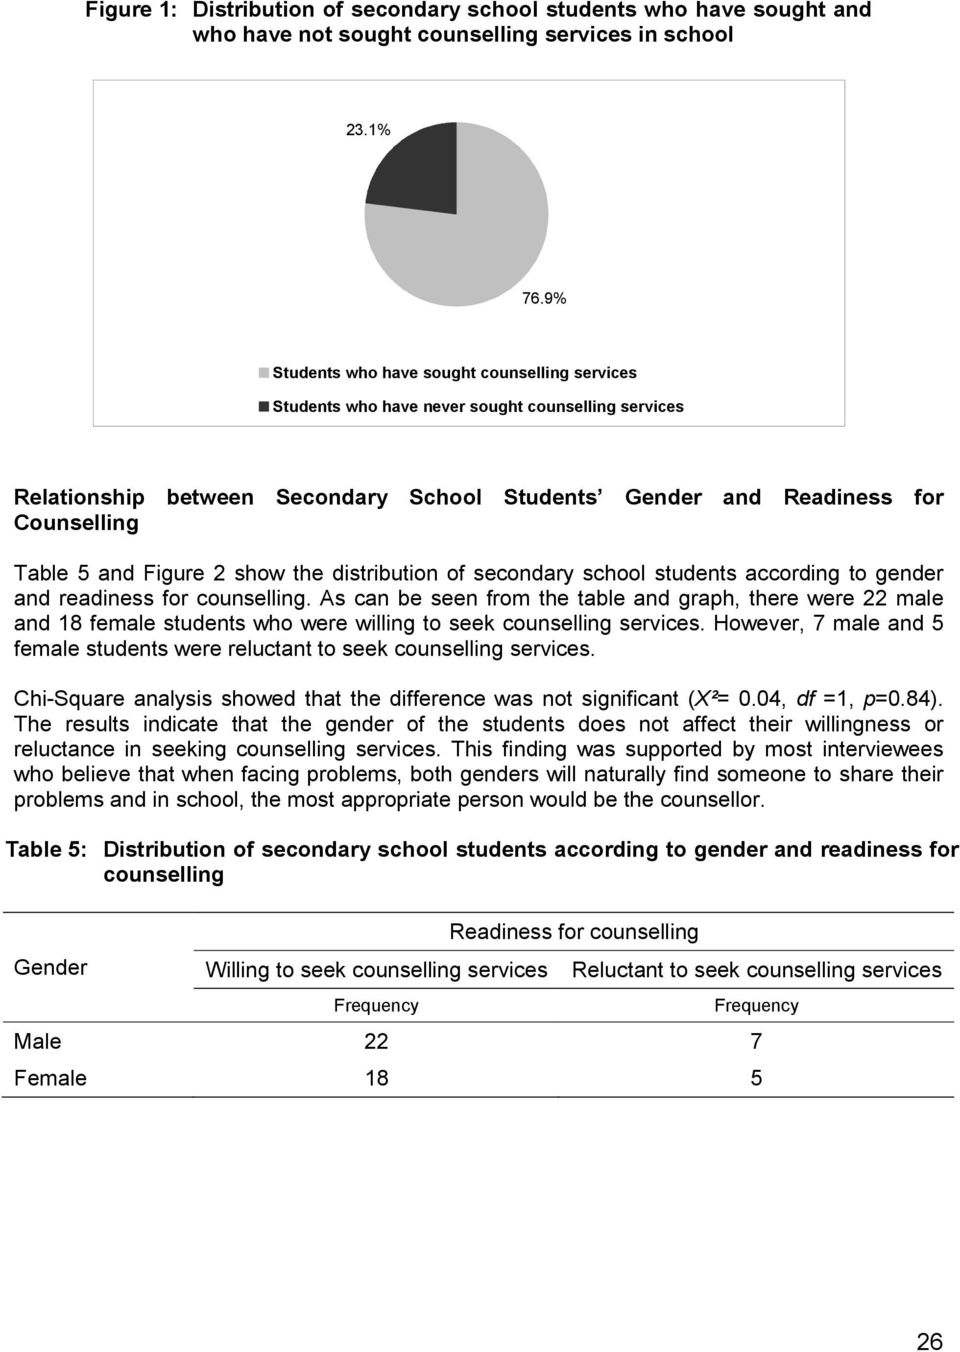 school students according to gender and readiness for. As can be seen from the table and graph, there were 22 male and 18 female students who were willing to seek.